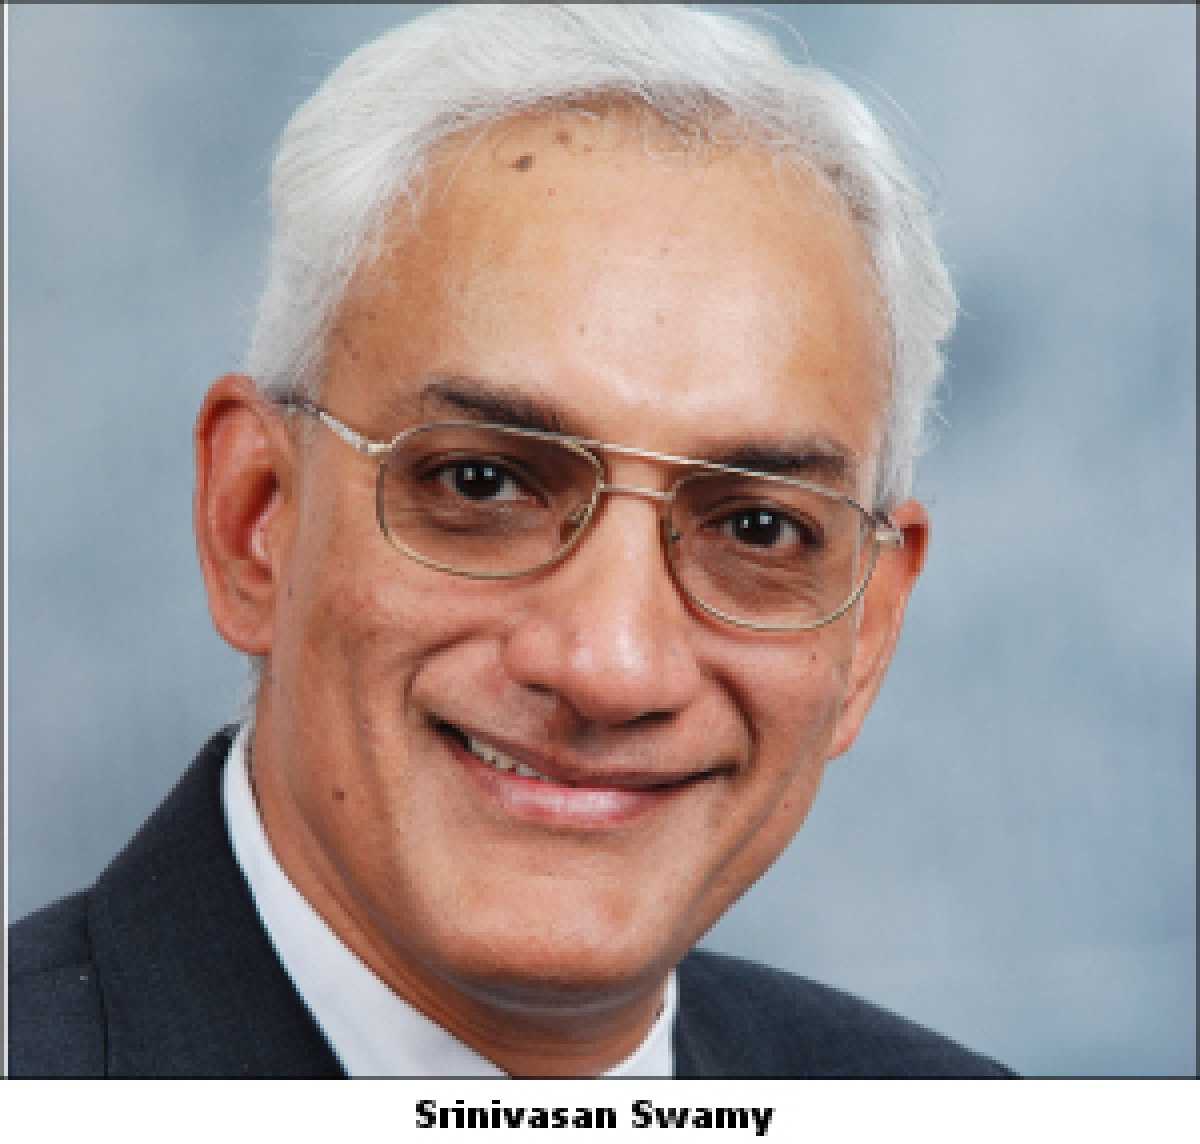 Srinivasan Swamy re-elected as president of IAA India Chapter